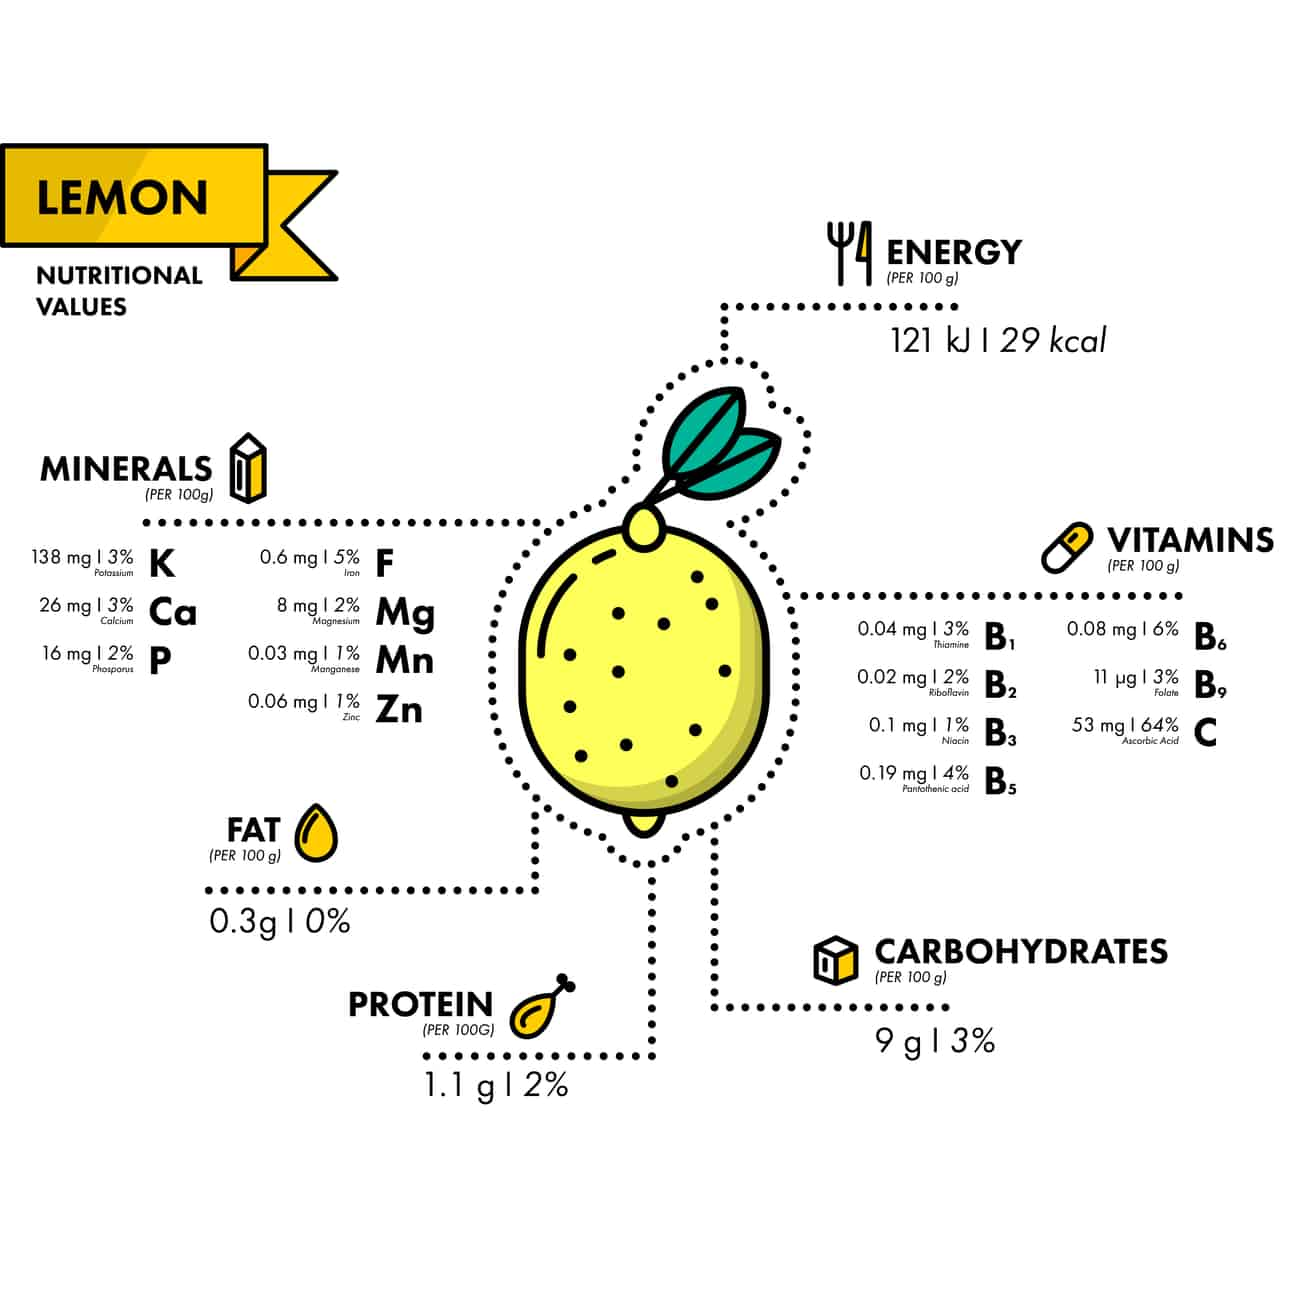 Nutrition facts for lemons - chart